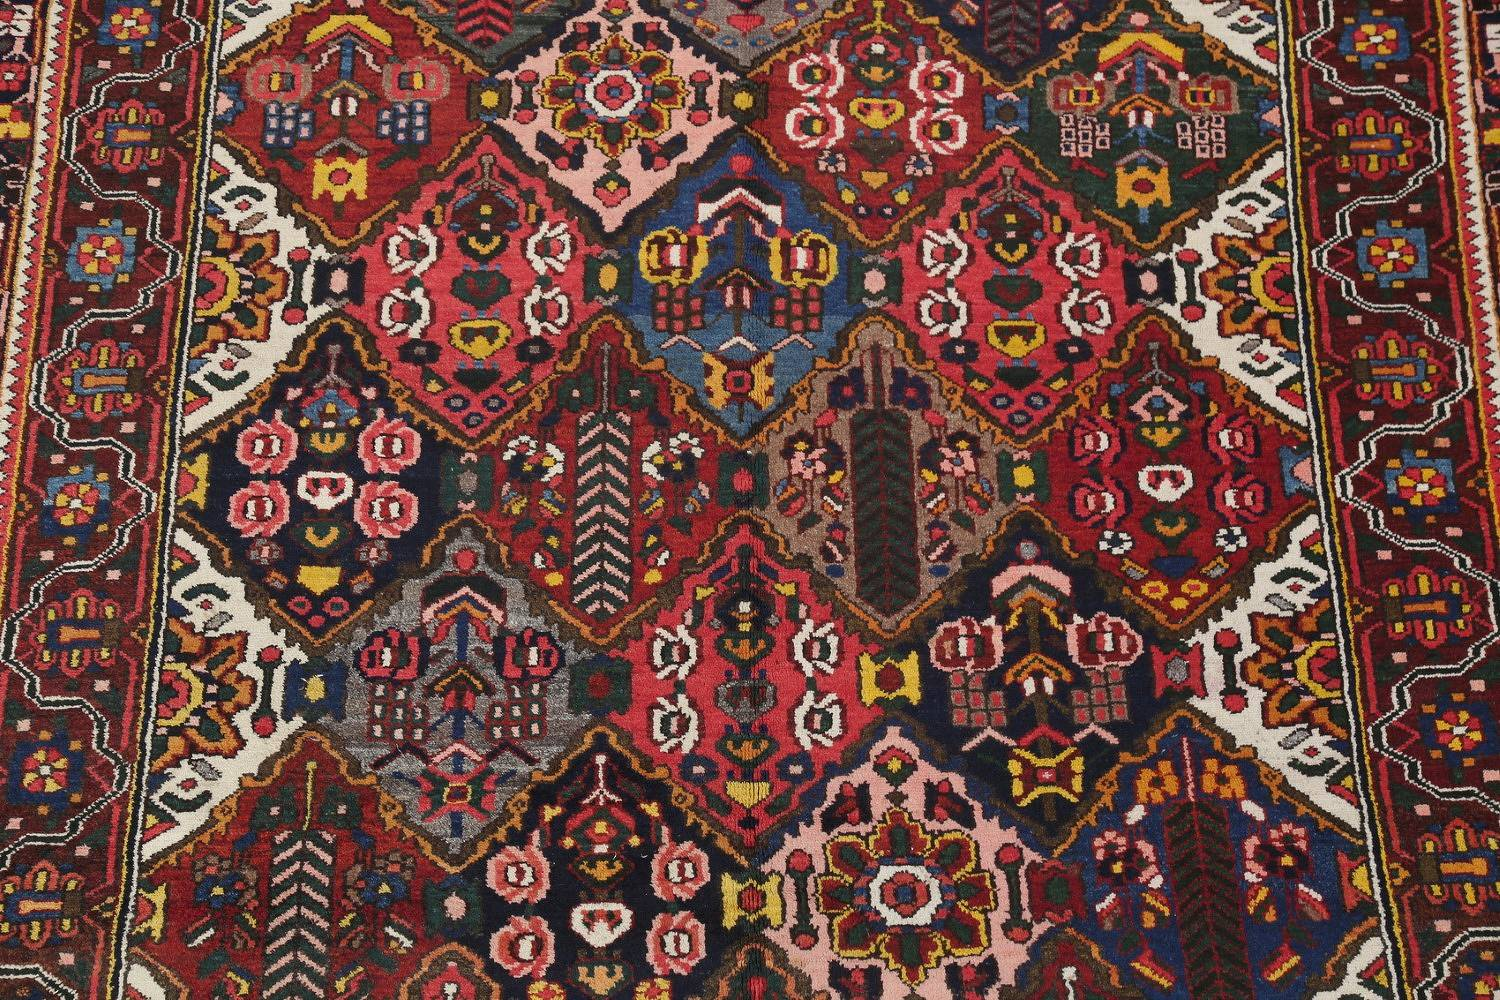 Antique Vegetable Dye Bakhtiari Persian Hand-Knotted Area Rug 7x12 image 4